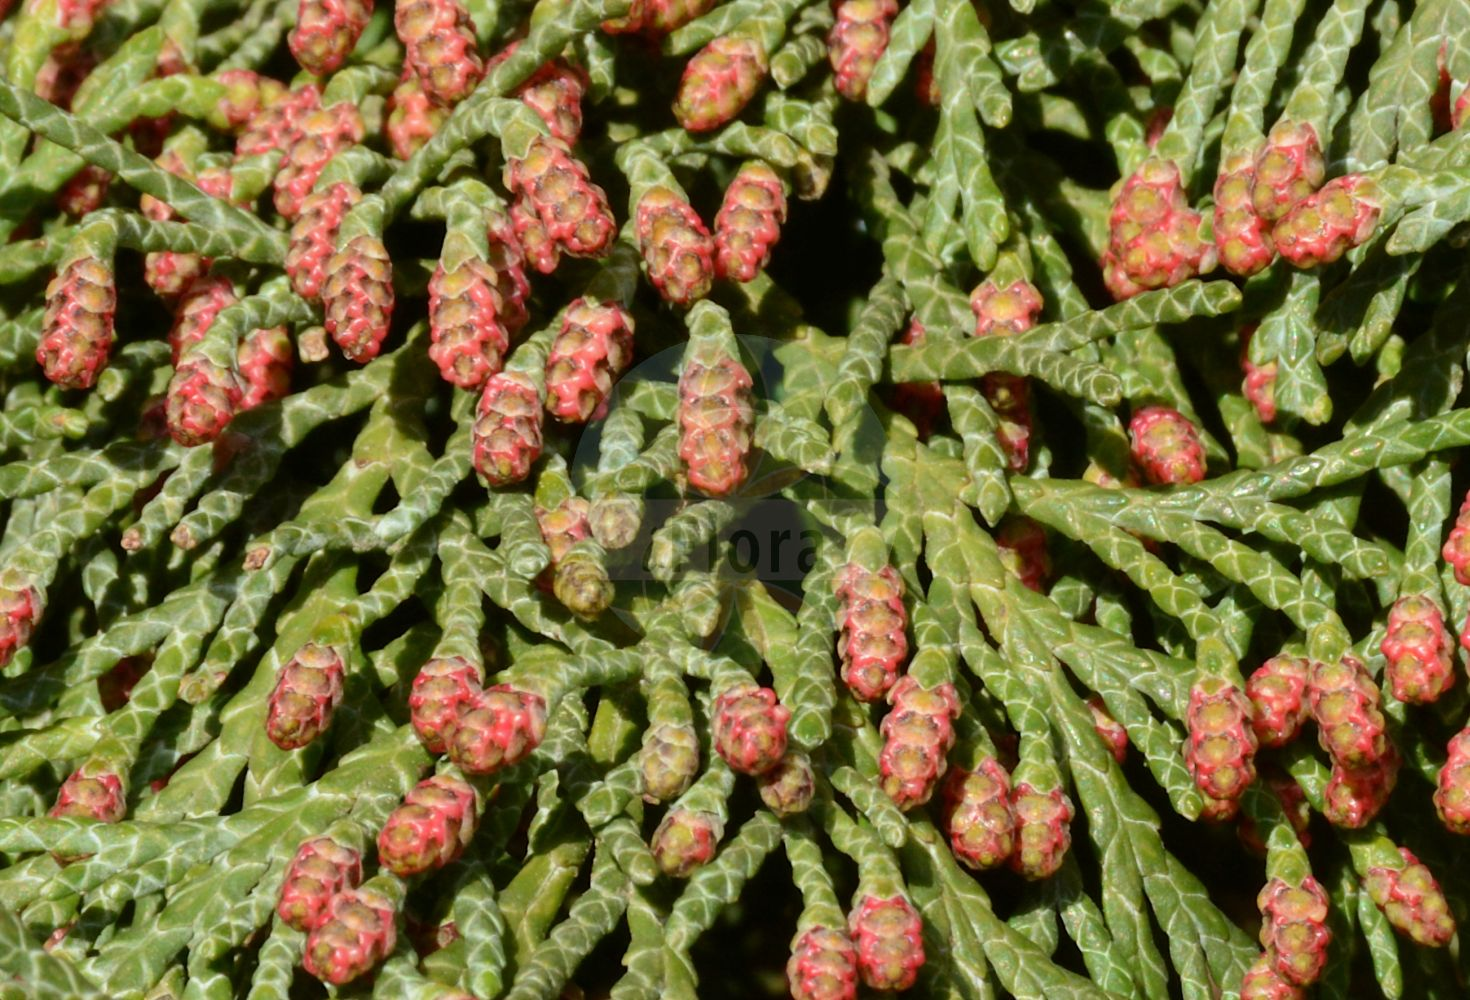 Foto von Chamaecyparis lawsoniana (Lawson-Scheinzypresse - Lawson's Cypress). Das Bild zeigt Zweig, Blatt und Bluete. Das Foto wurde in Hamburg, Deutschland aufgenommen. ---- Photo of Chamaecyparis lawsoniana (Lawson-Scheinzypresse - Lawson's Cypress).The image is showing twig, leaf and flower.The picture was taken in Hamburg, Germany.(Chamaecyparis lawsoniana,Lawson-Scheinzypresse,Lawson's Cypress,Cupressus lawsoniana,Lawson False Cypress,Lawson's False Cypress,Oregon Cedar,Oregon Cypress,Port Orford Cedar,Port Orford White Cedar,Chamaecyparis,Scheinzypresse,False Cypress,Cupressaceae,Zypressengewaechse,Cypress family,Zweig,Blatt,Bluete,twig,leaf,flower)